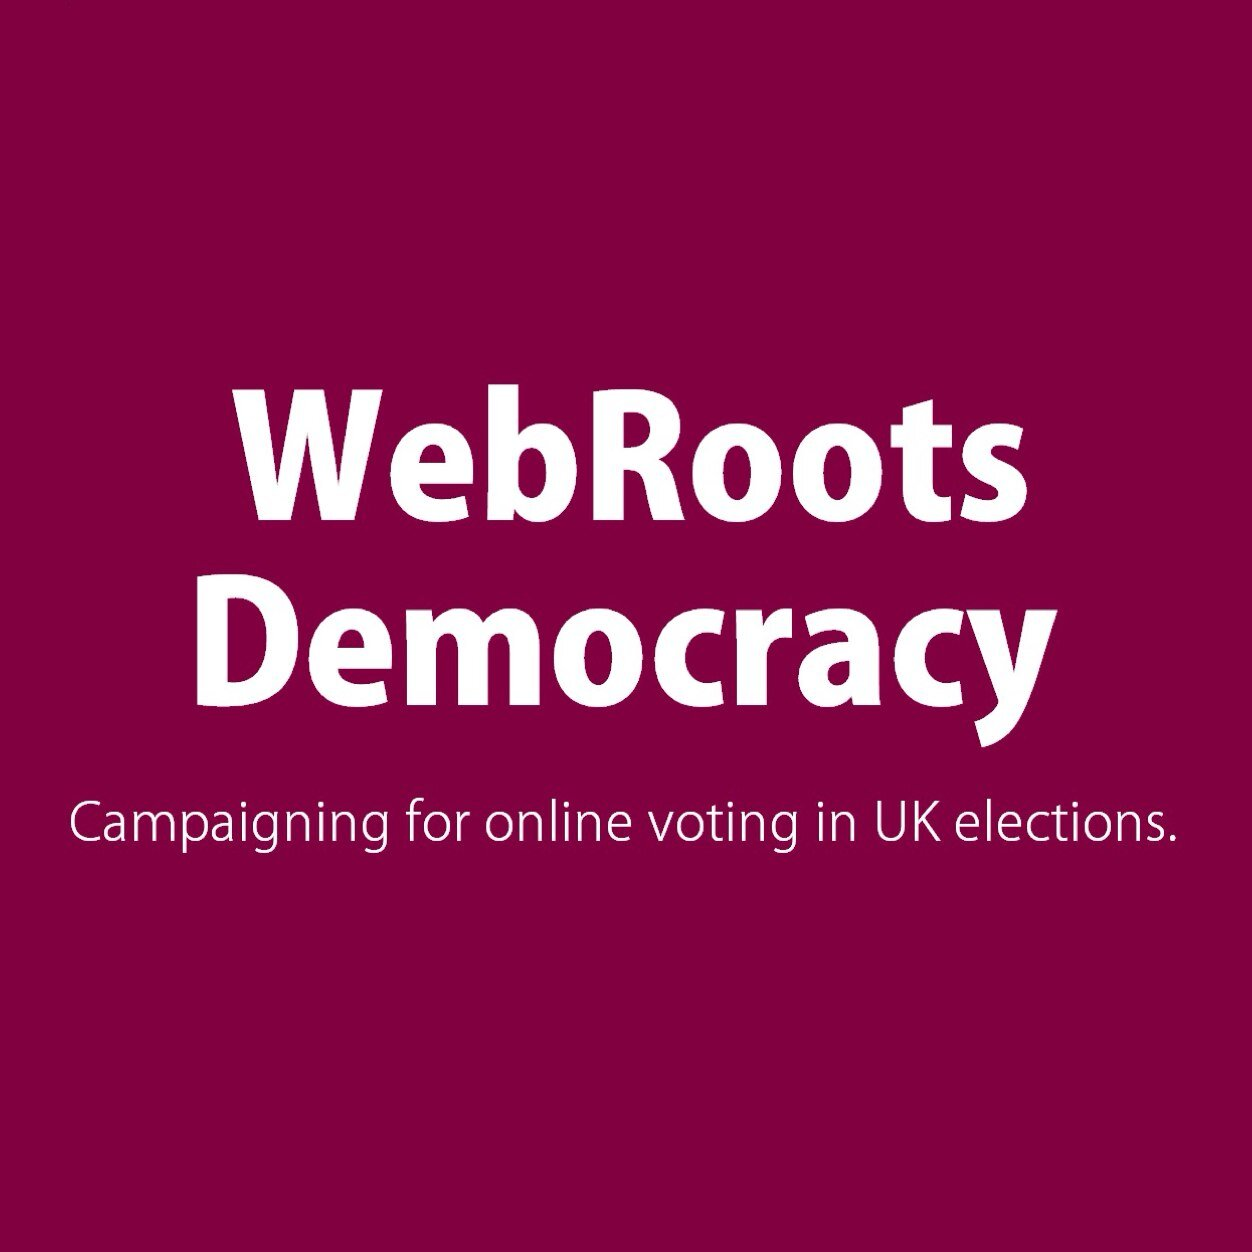 Online voting in the UK